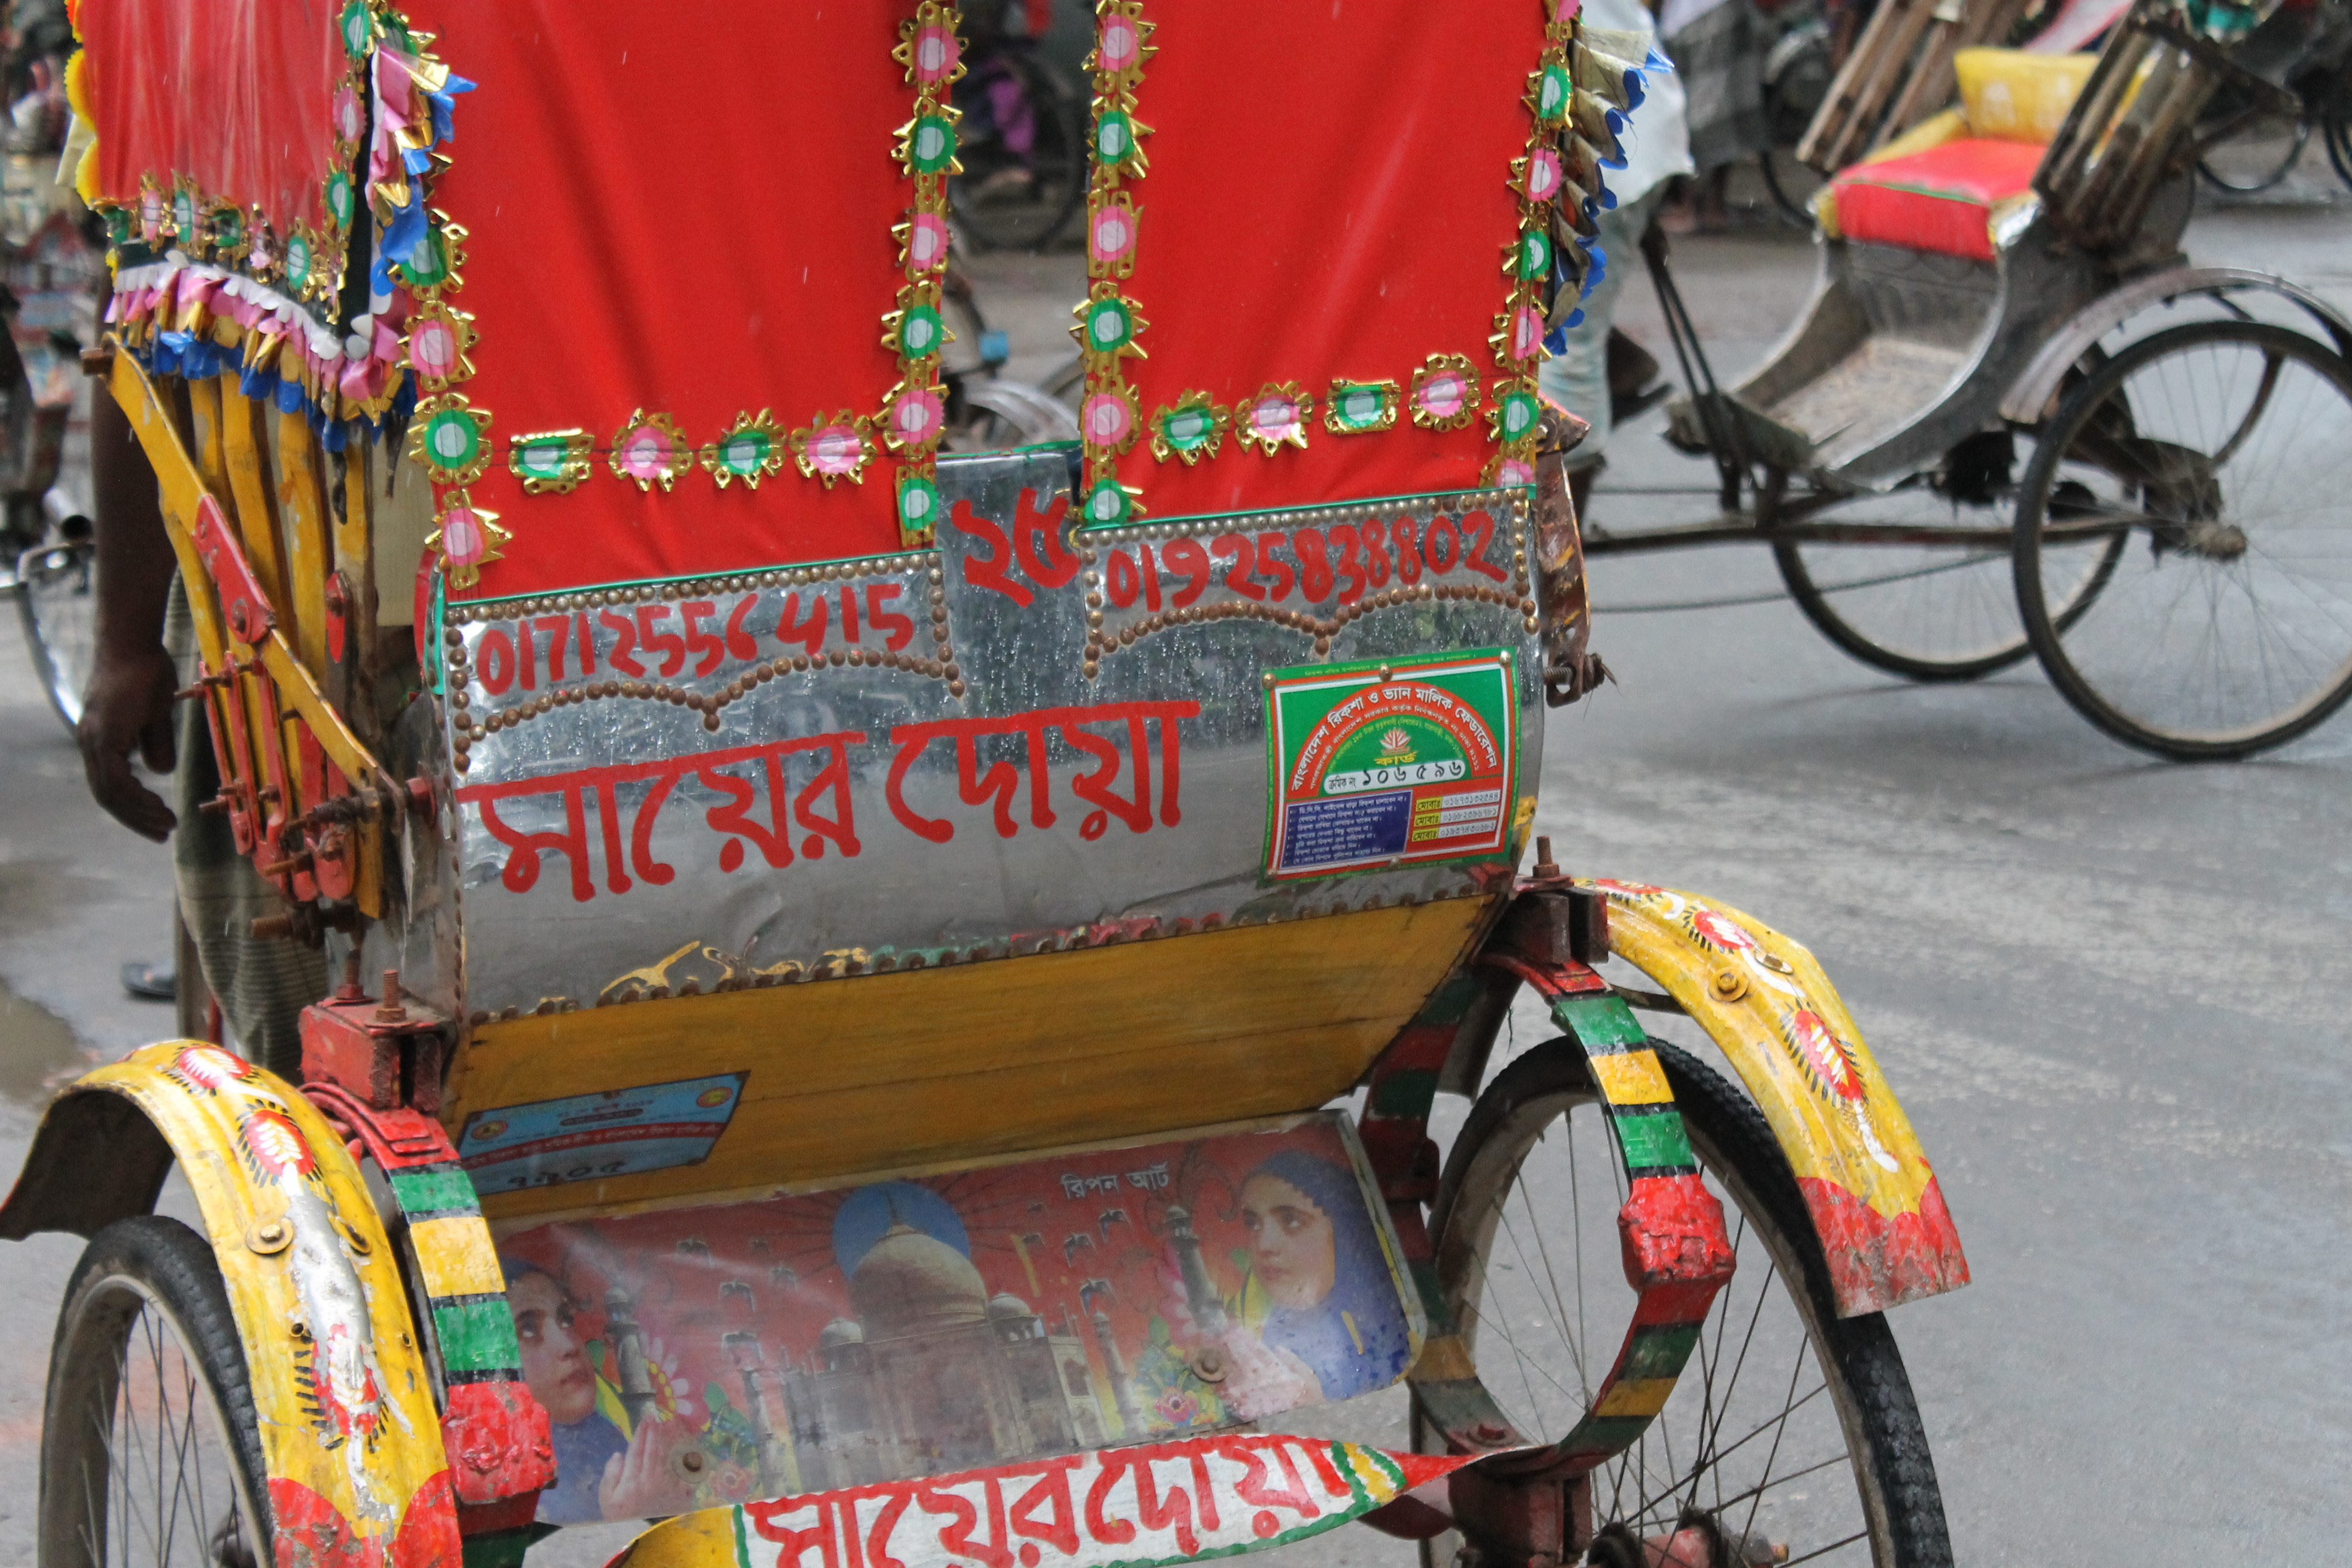 Half a million rickshaws, all trying to give you a ride.